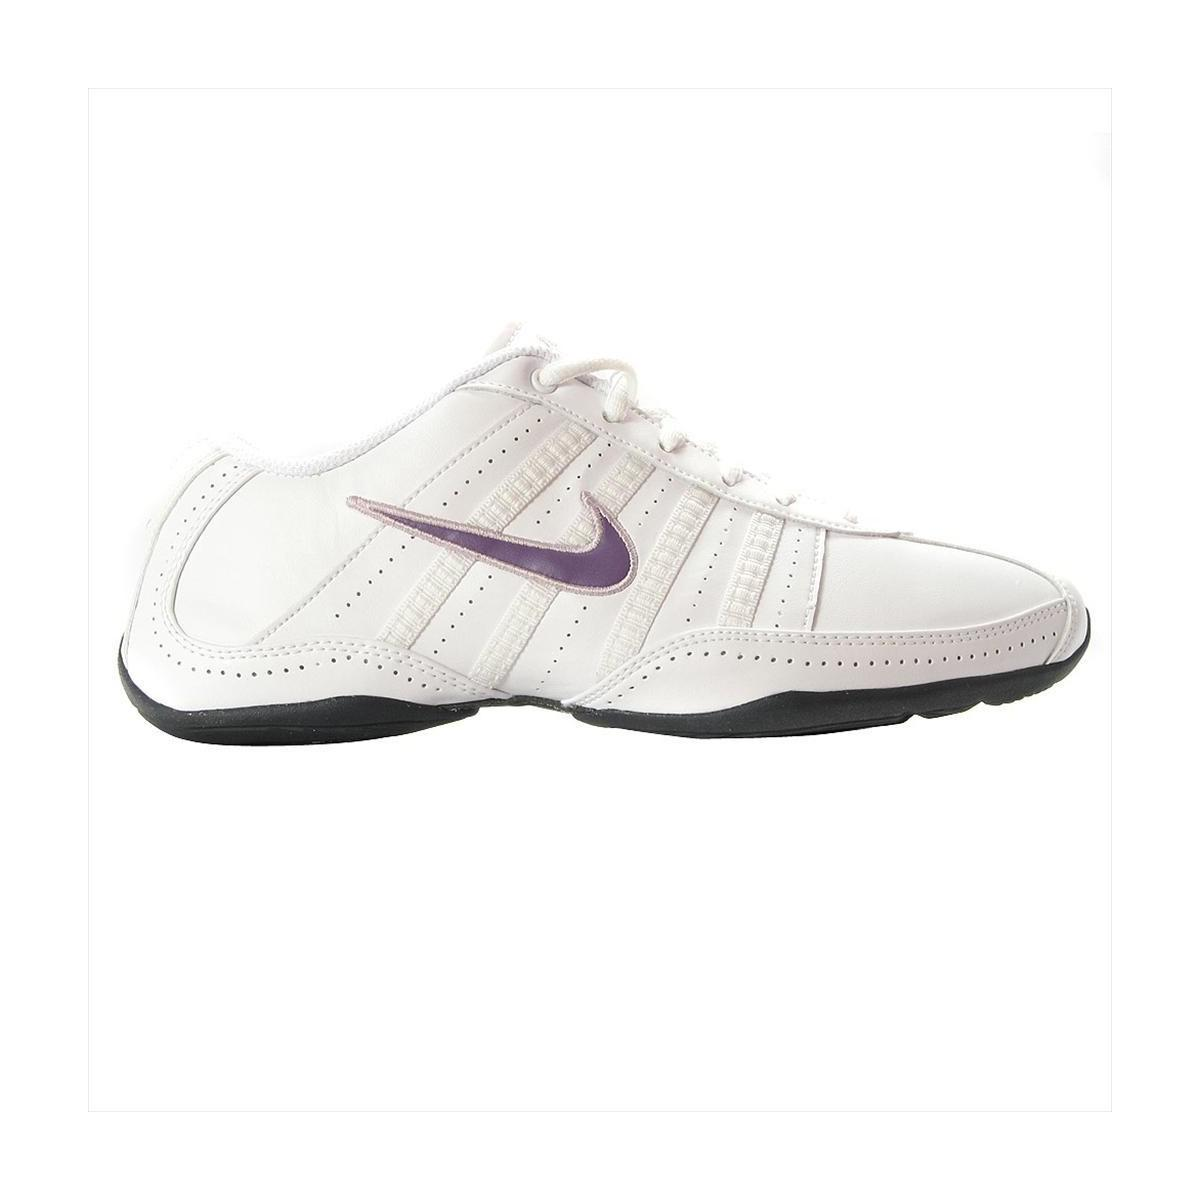 Nike Musique Iii Sl Women s Shoes (trainers) In White in White - Lyst 90052deadc